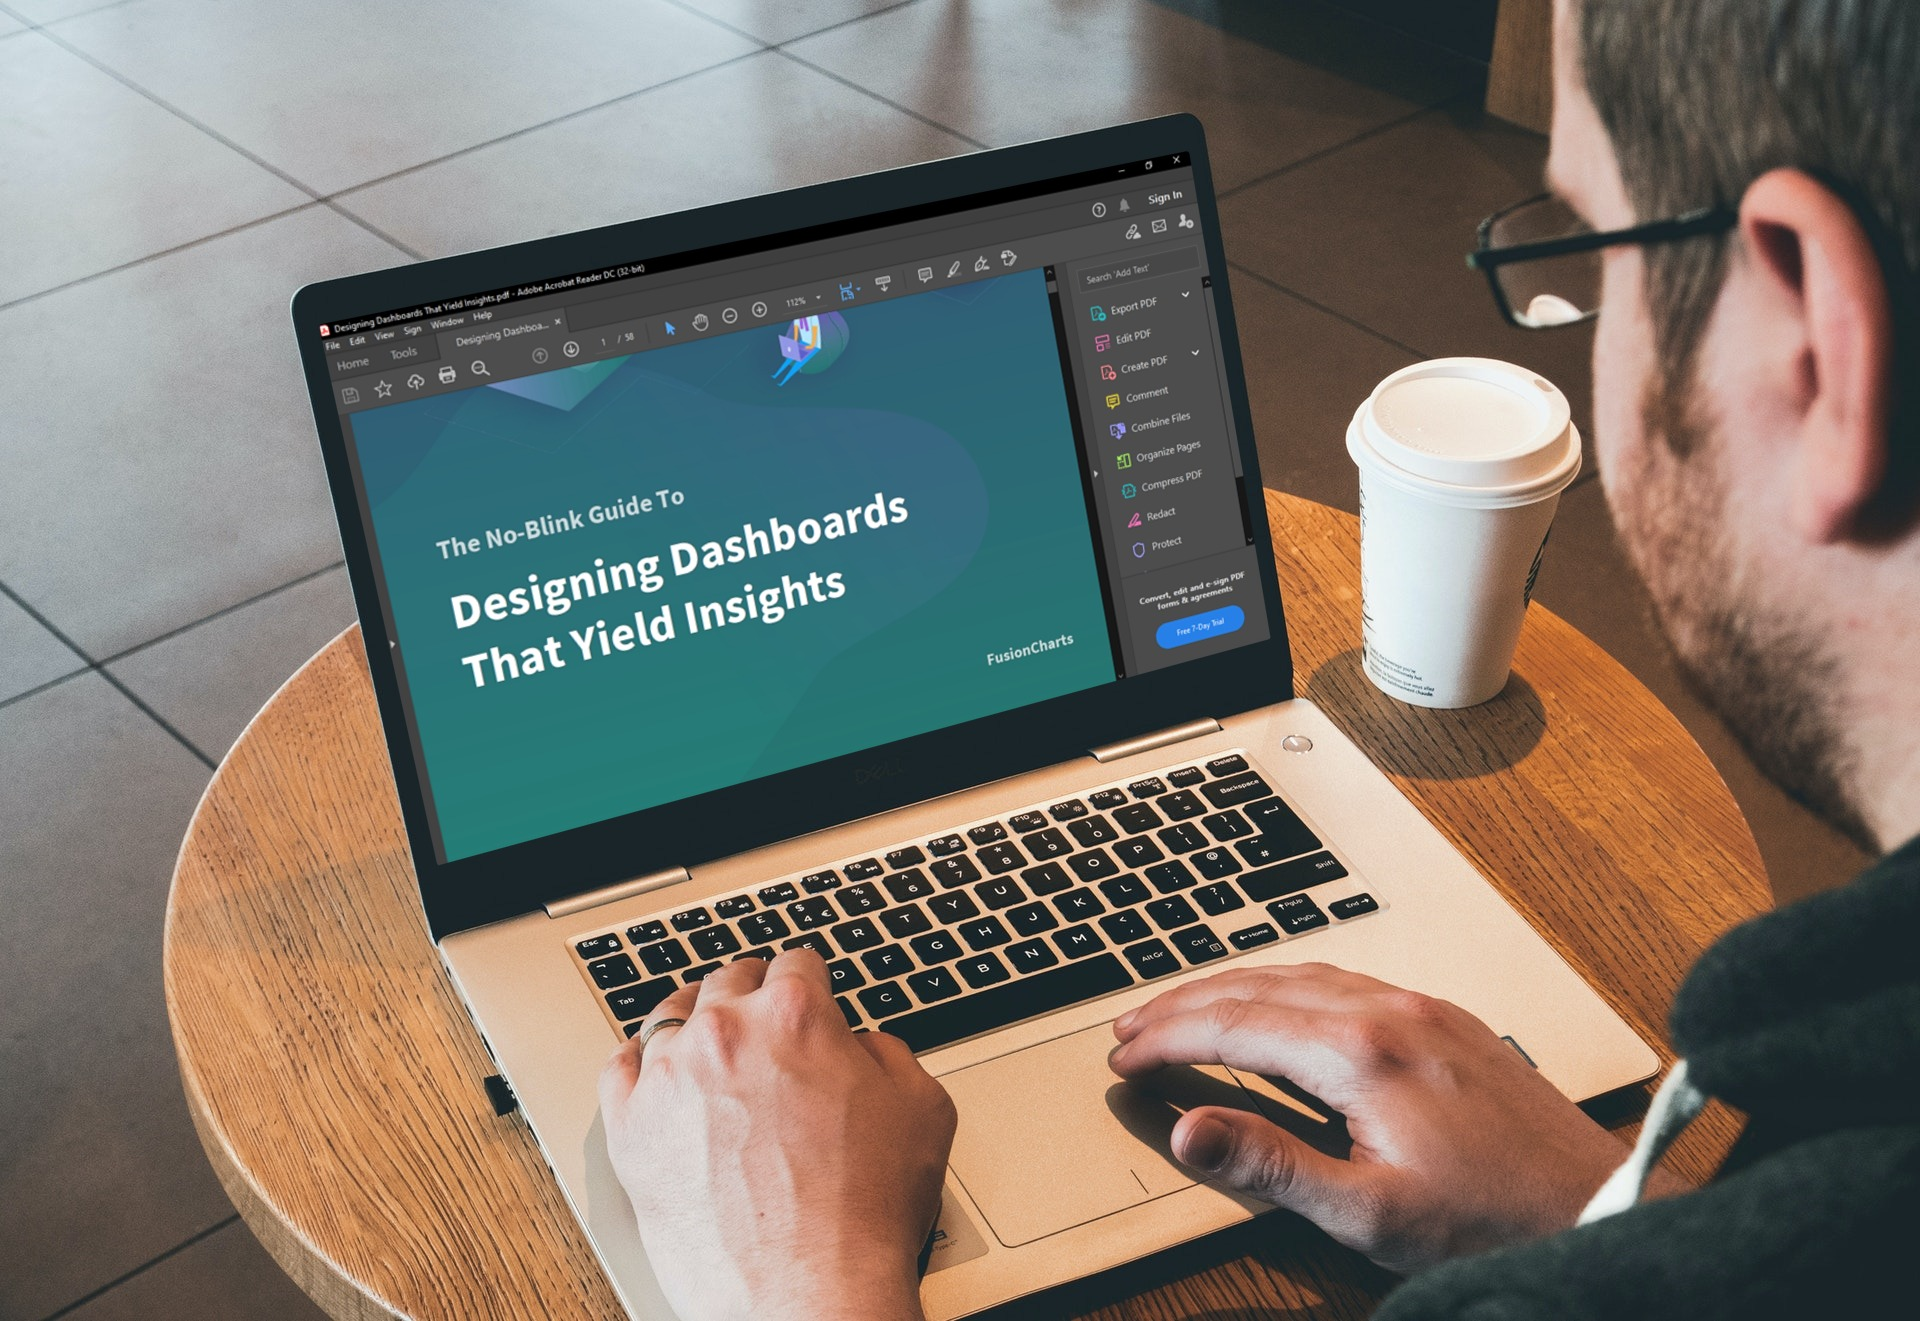 Supercharge Your Dashboards With These PowerfulTips